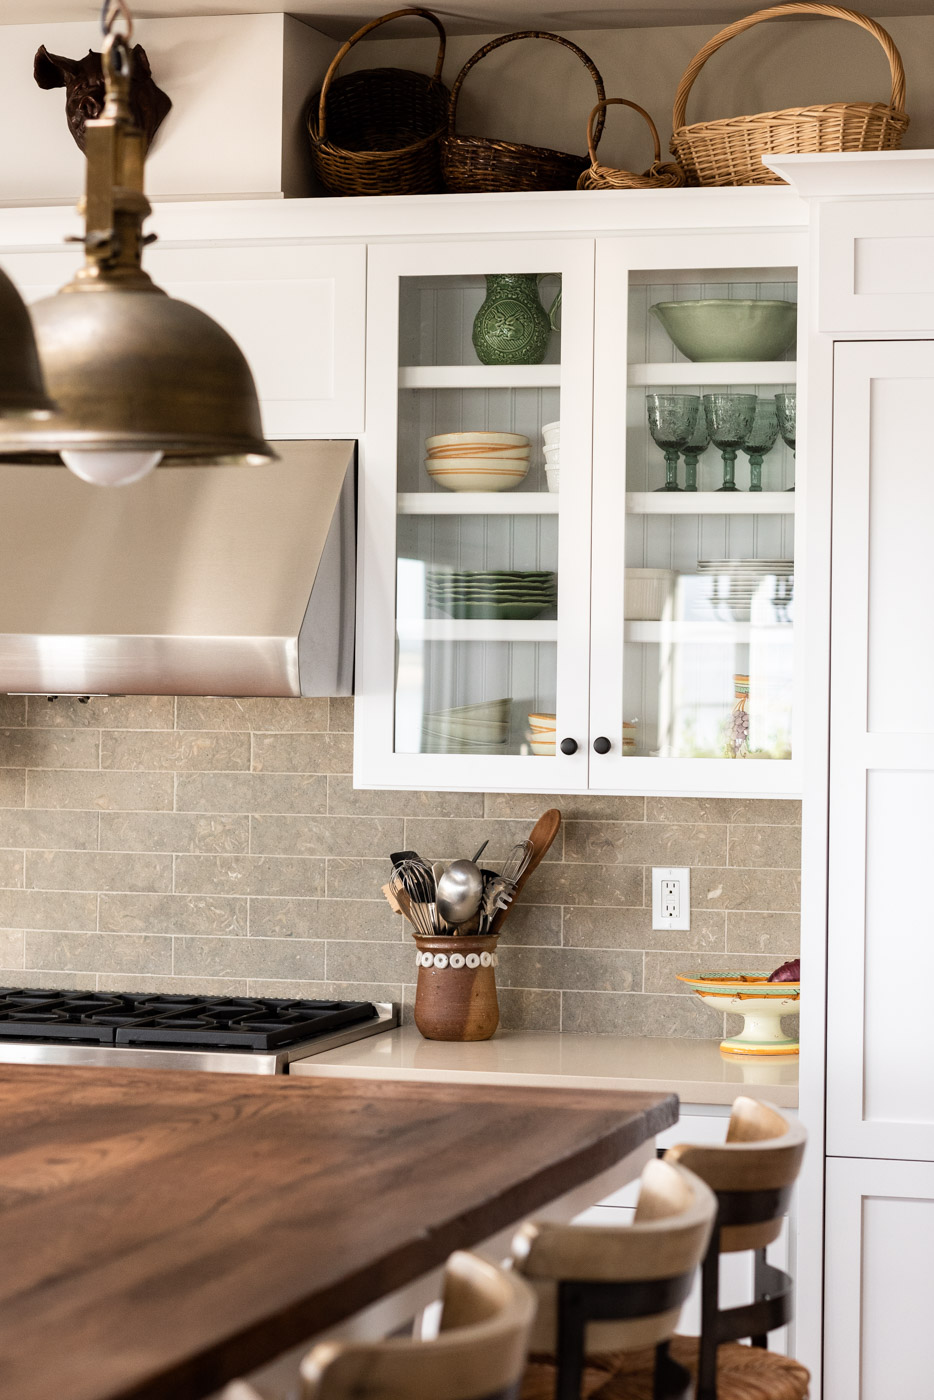 Coastal Craftsman kitchen with custom white painted shaker cabinets and glass door panels